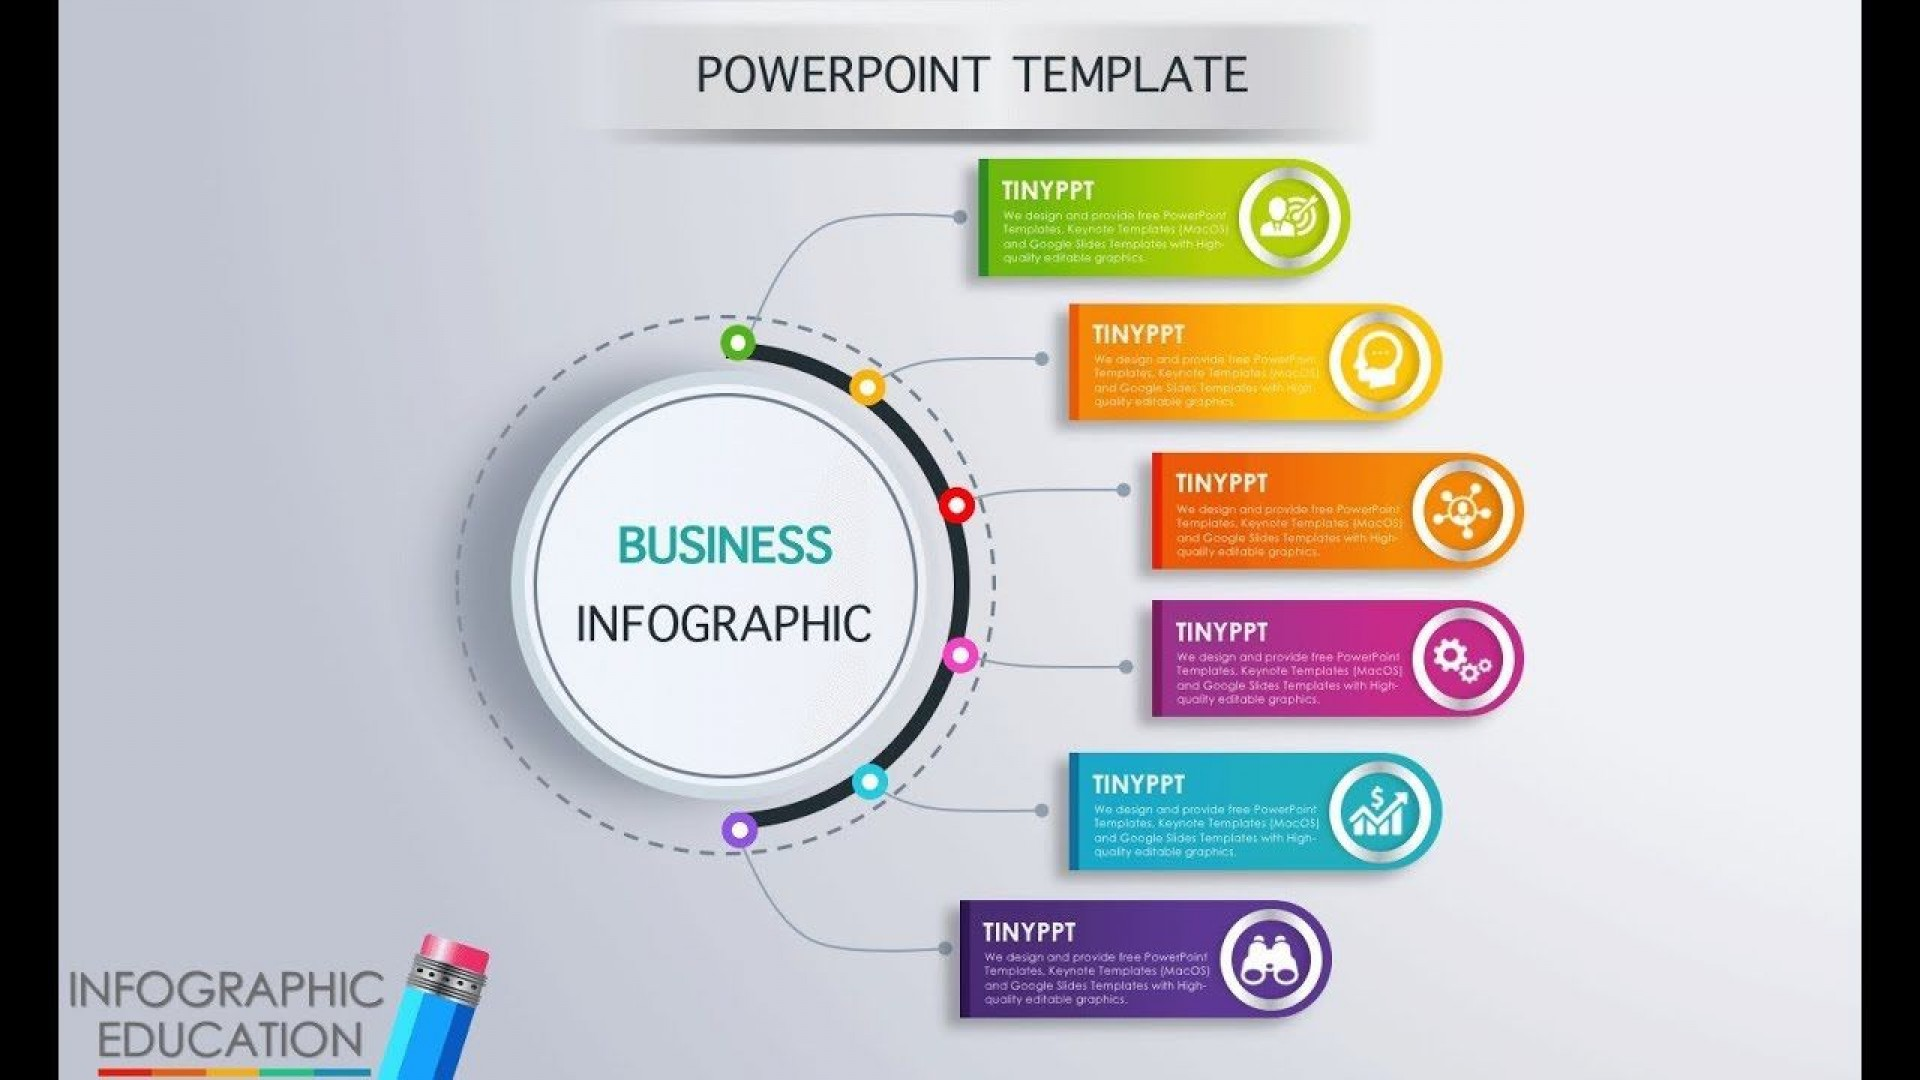 007 Top Animated Ppt Template Free Download Highest Clarity  Downloads Powerpoint Education 2020 Microsoft1920